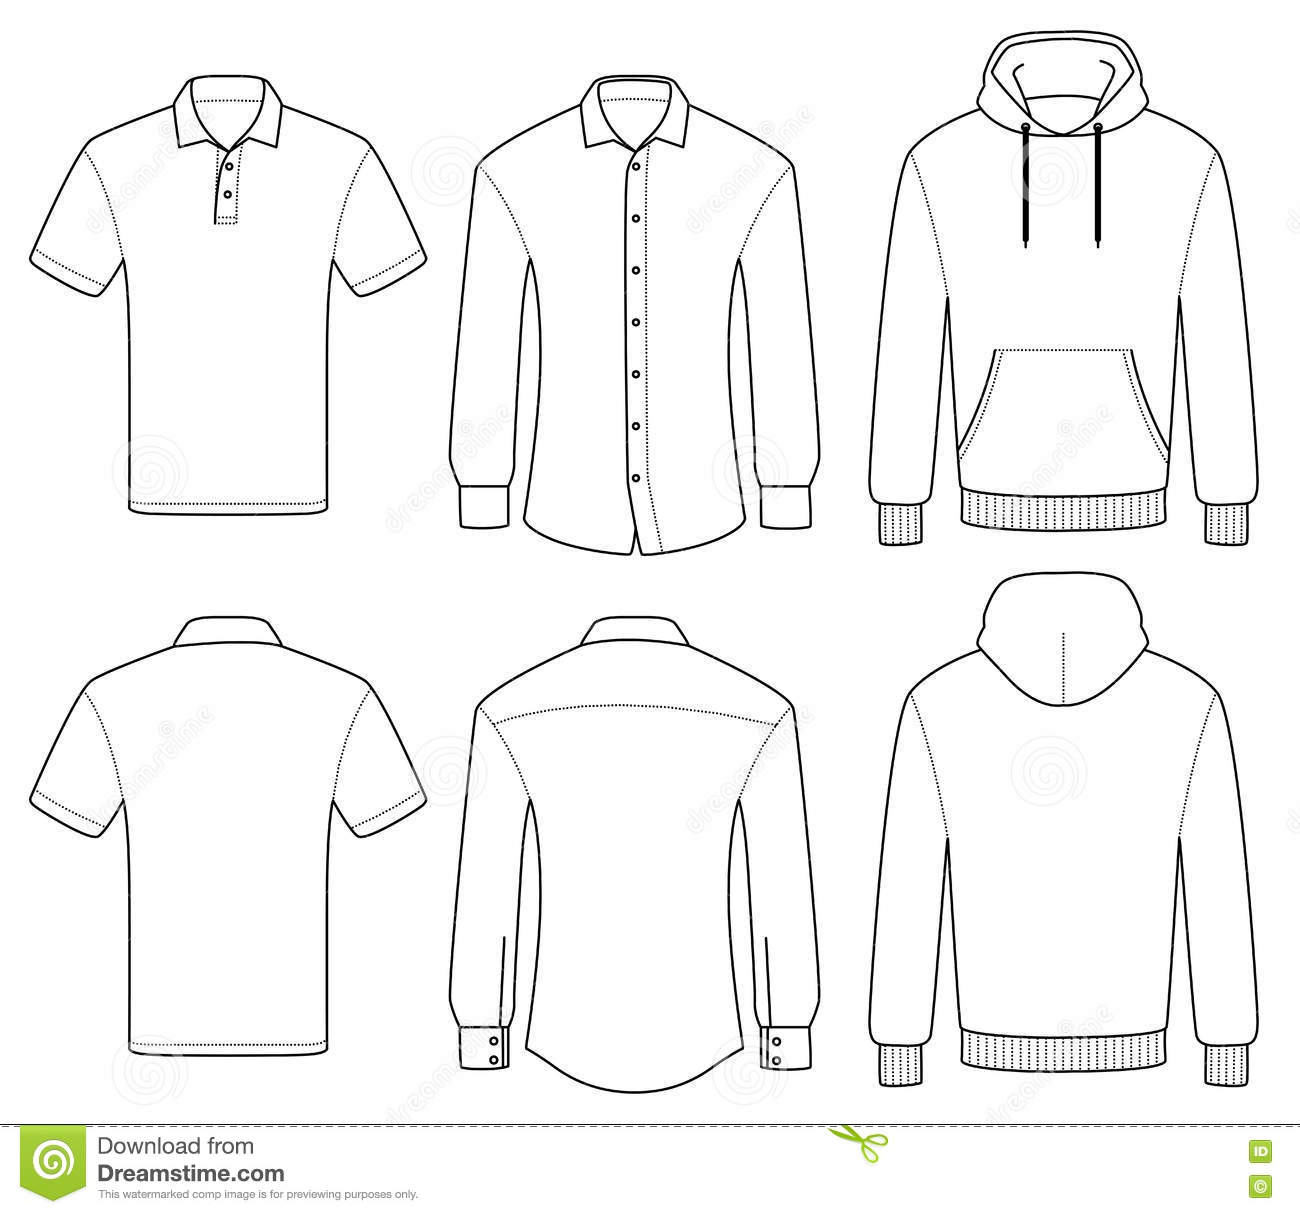 Polo shirt outline cliparts. Co.